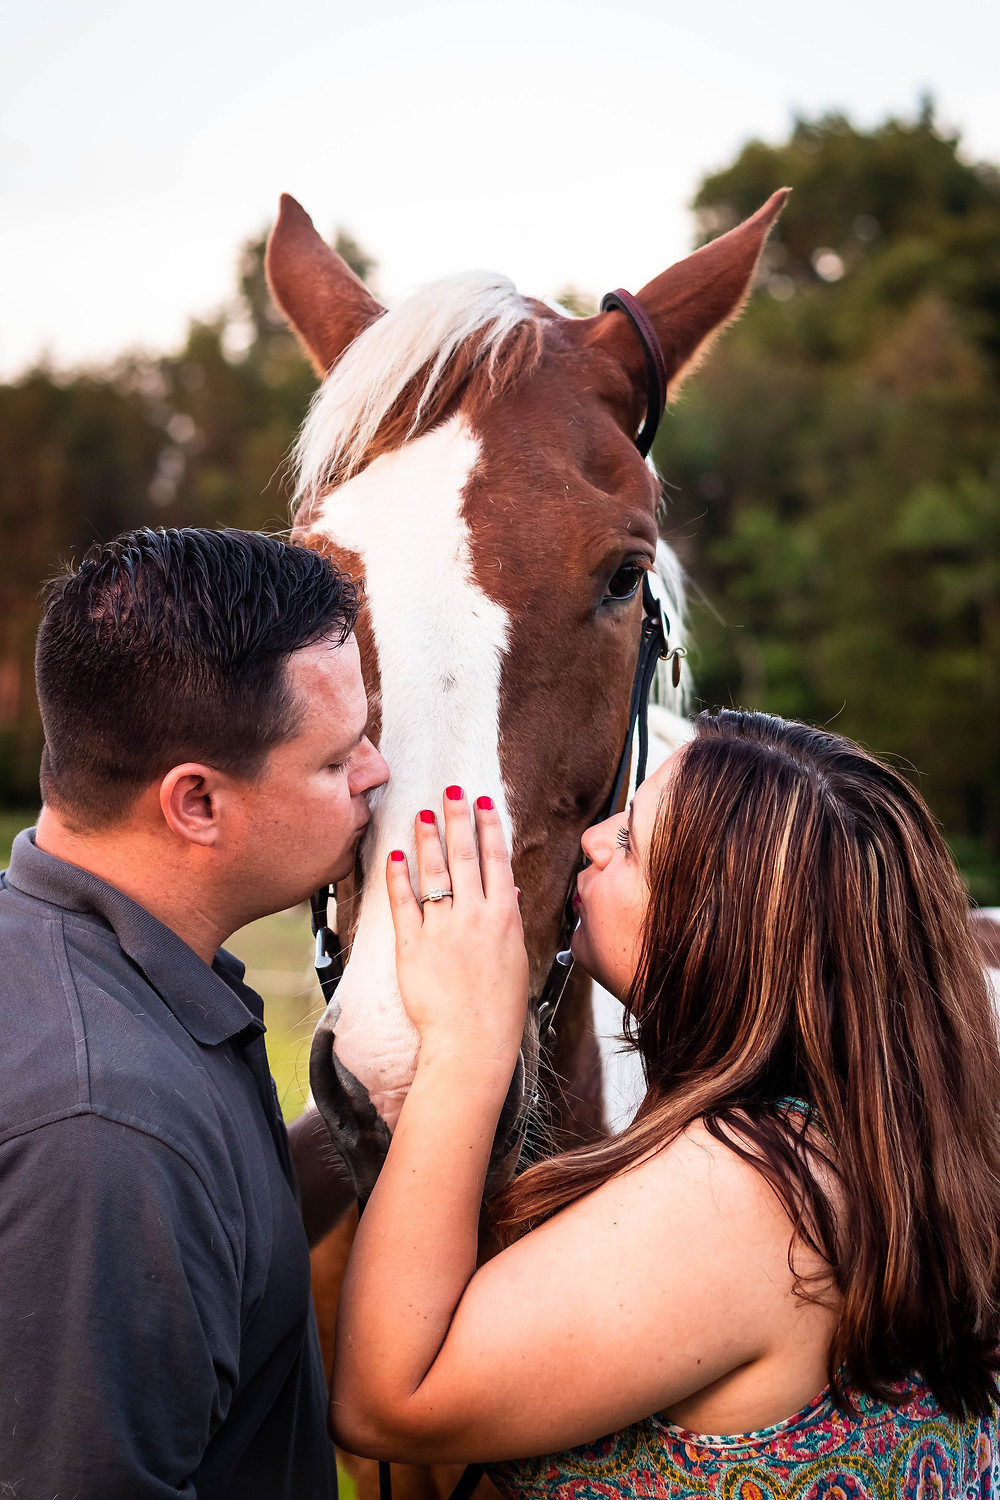 Cute couple give painted horse a kiss in Lewisburg, Tennessee